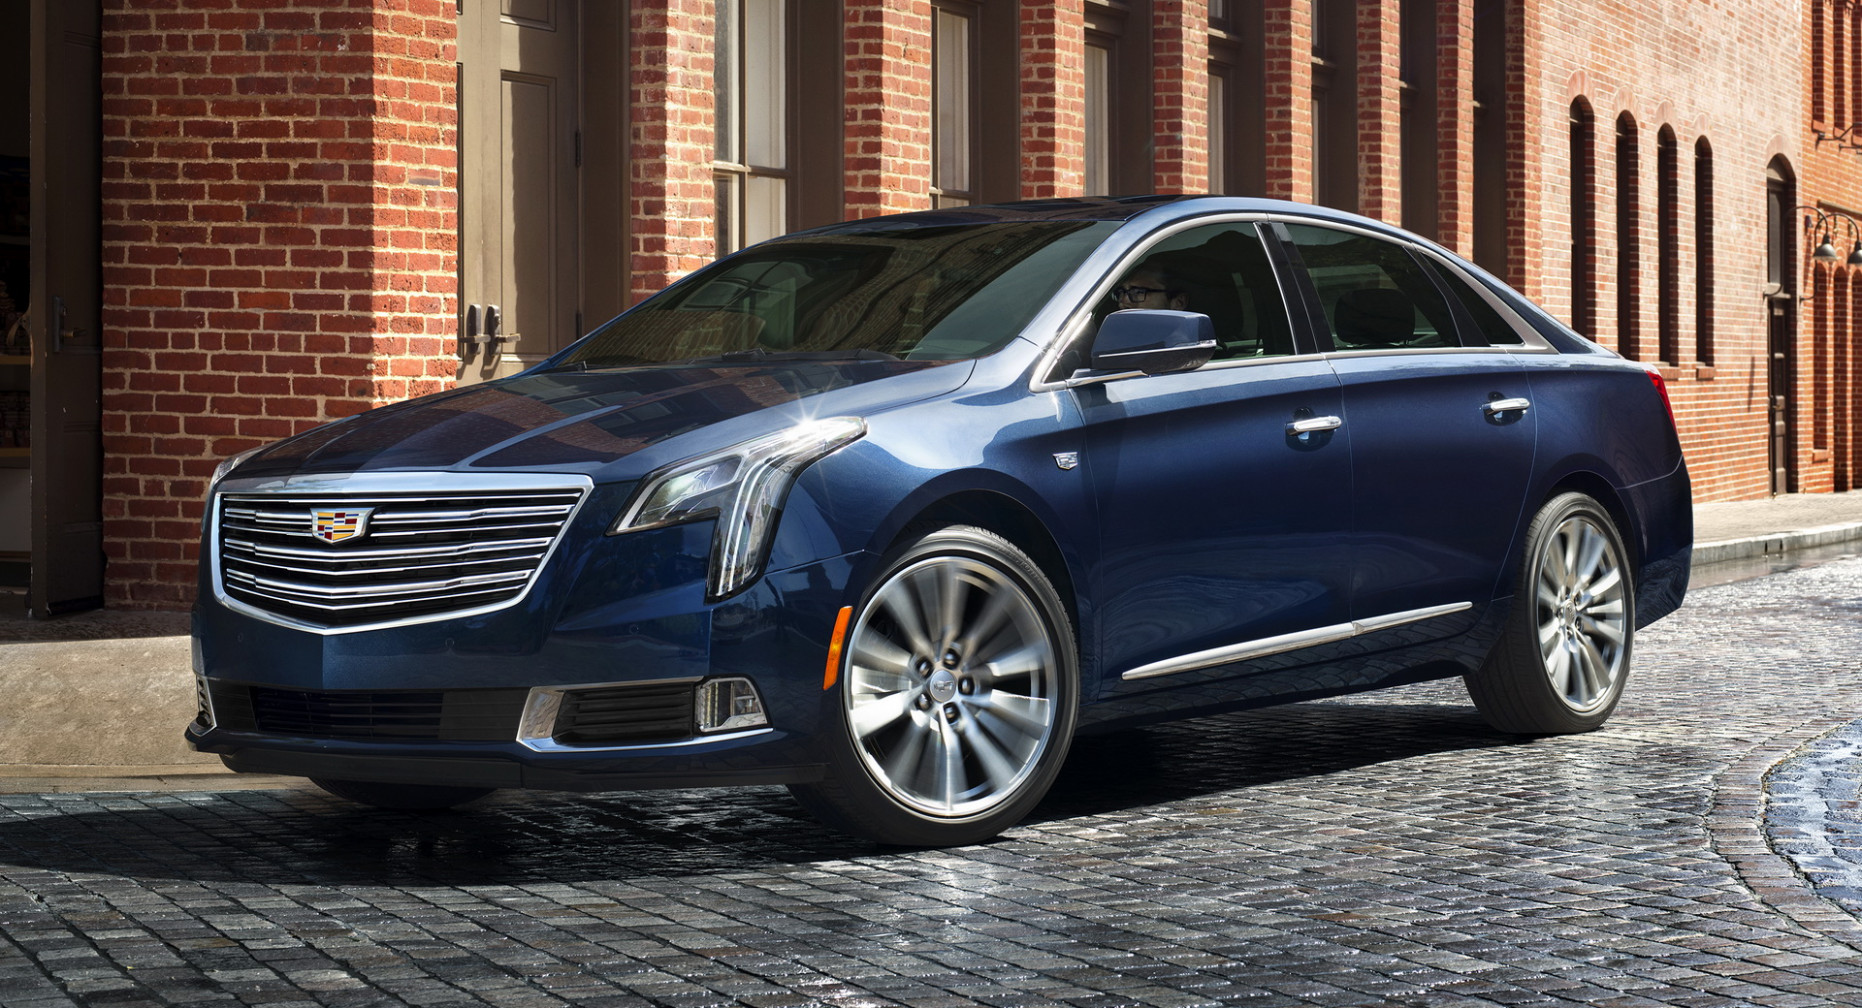 New Review 2022 Candillac Xts